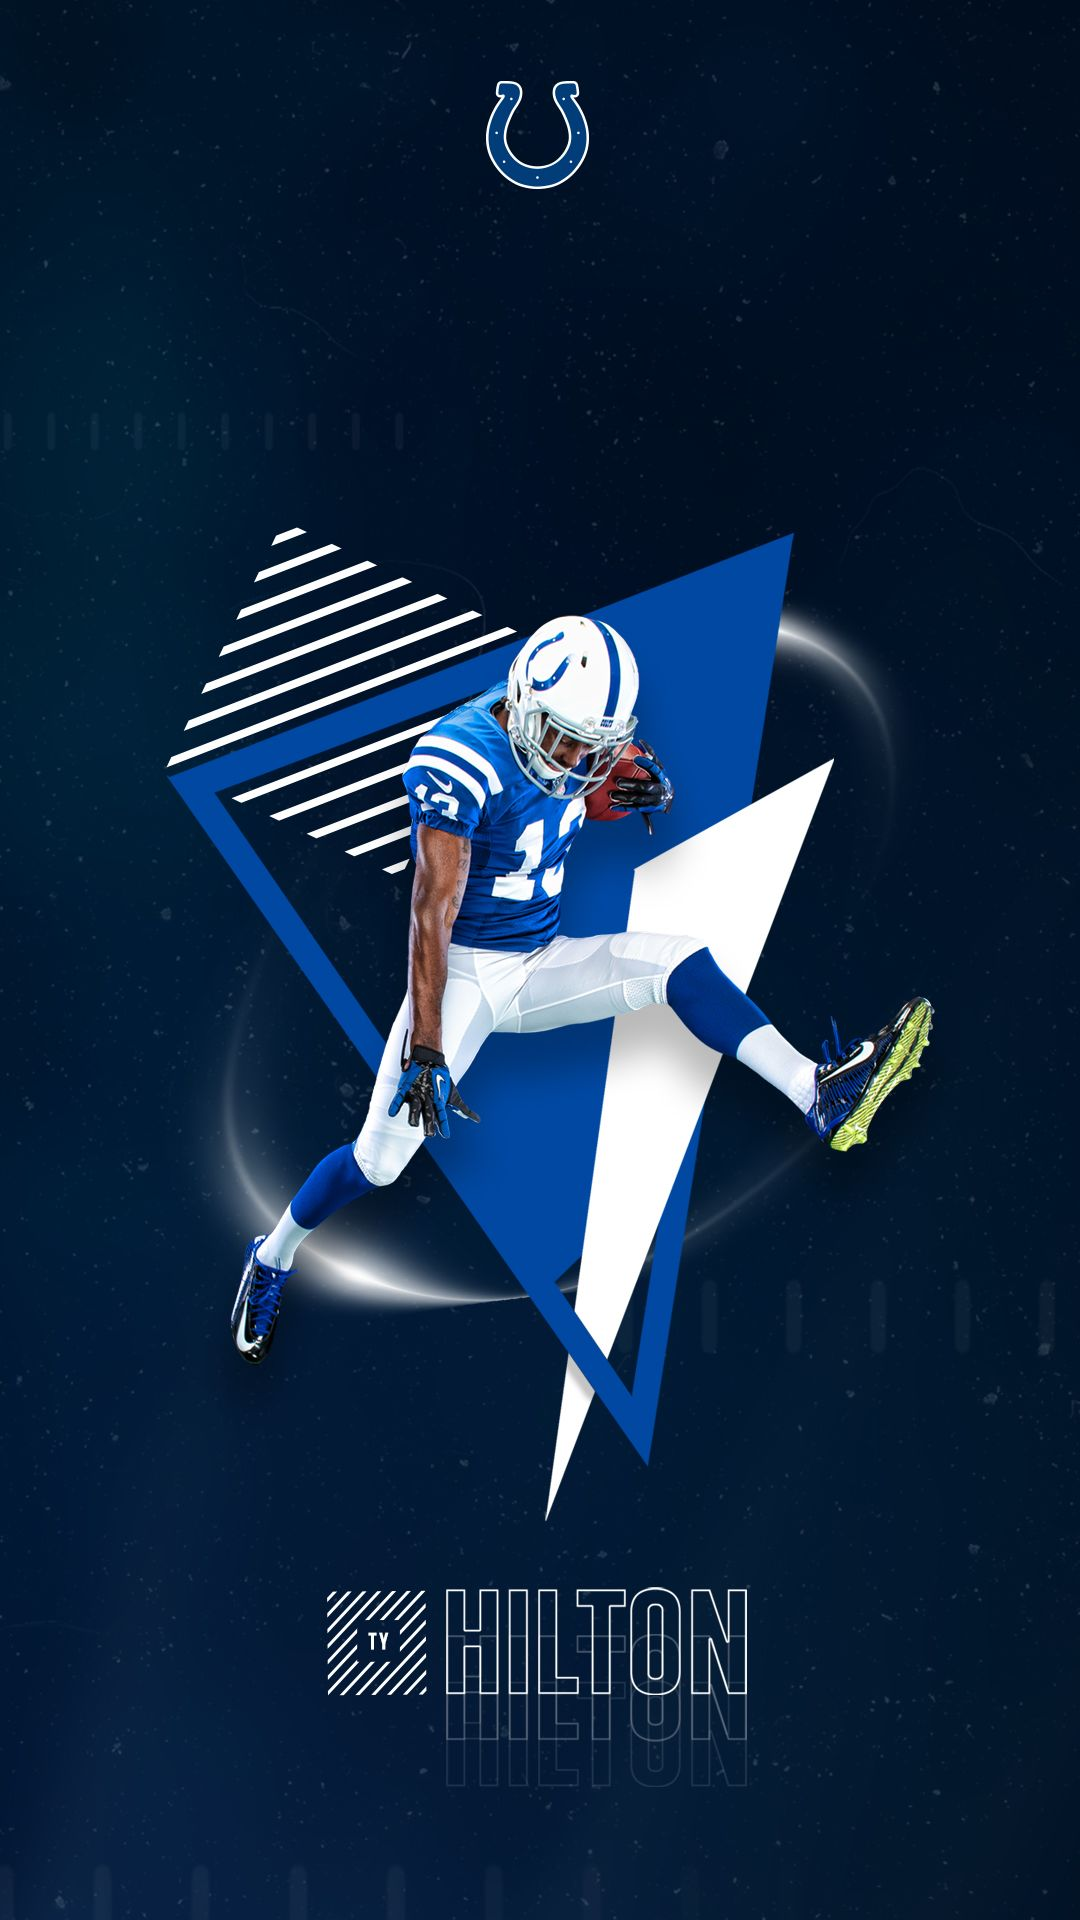 Indianapolis Colts Logo 1080x1920 Download Hd Wallpaper Wallpapertip